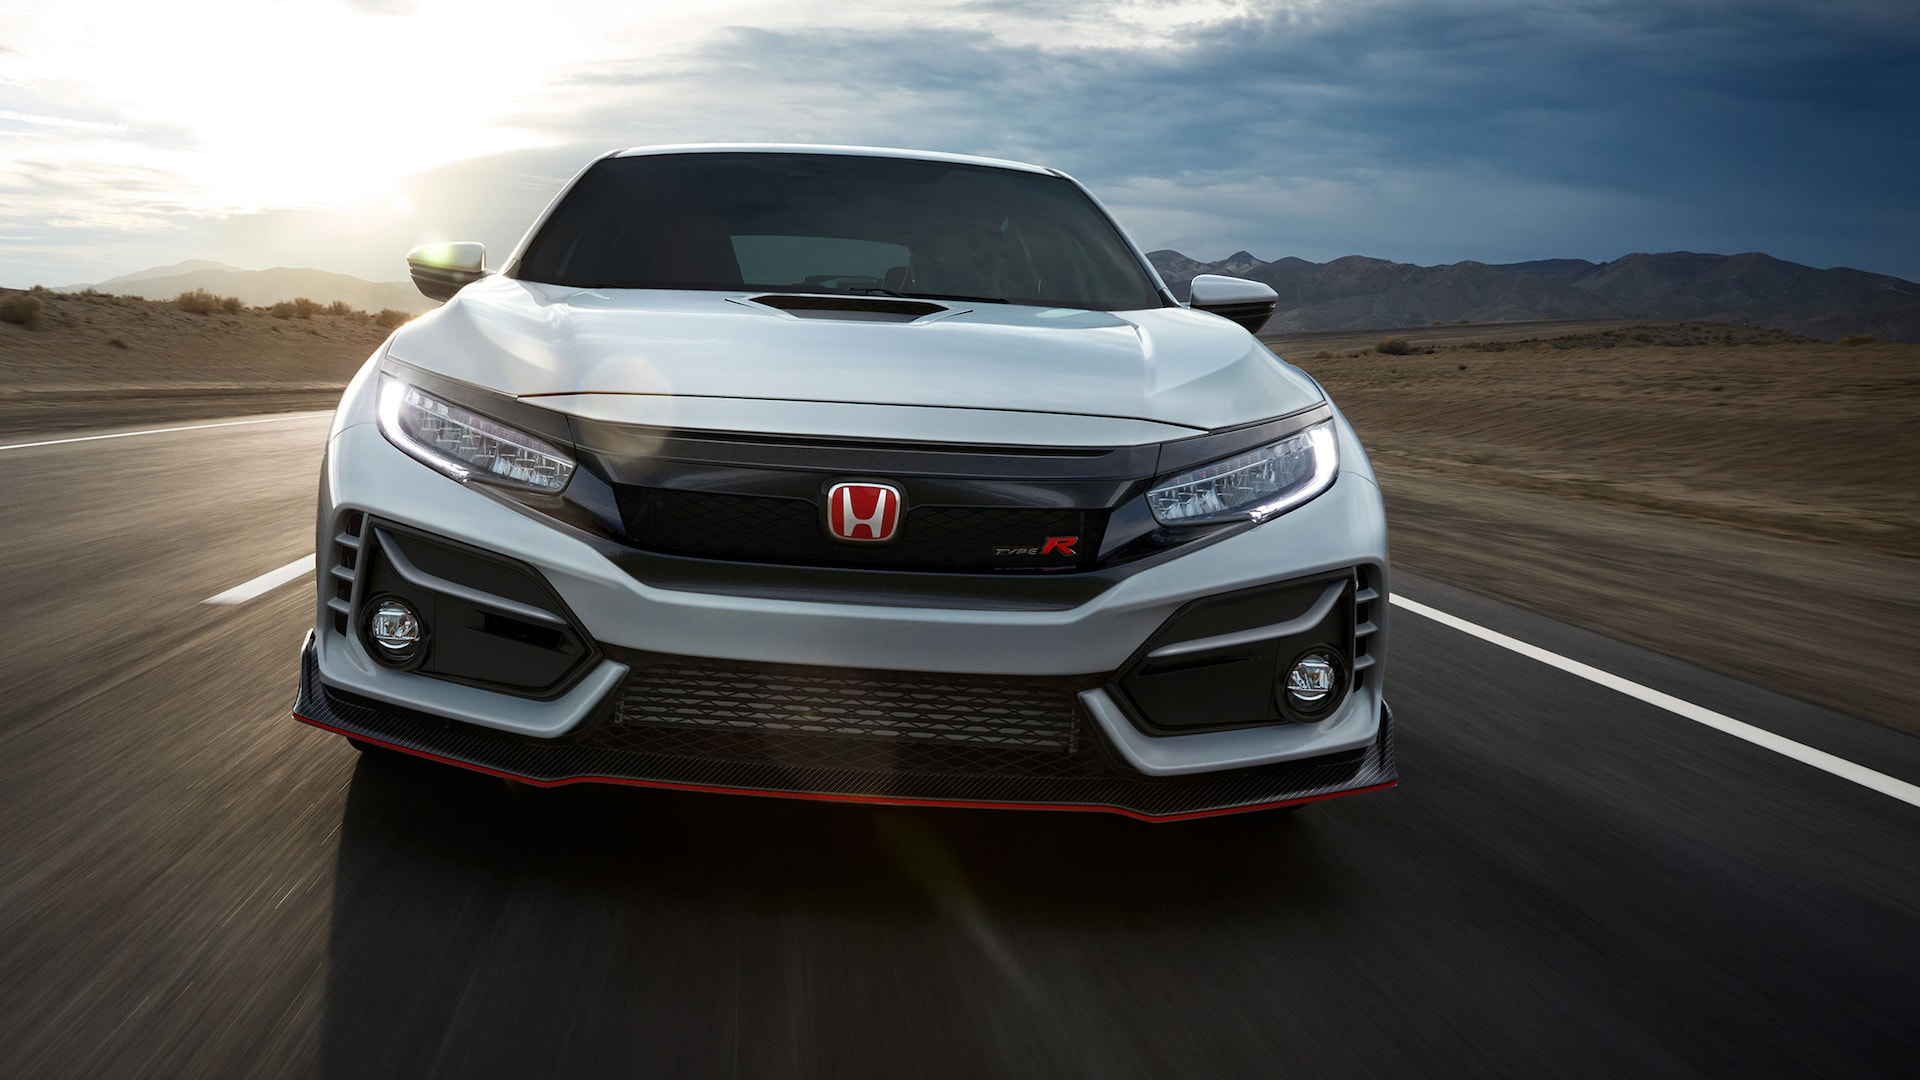 Front view of the 2021 Honda Civic Type R in Championship White.